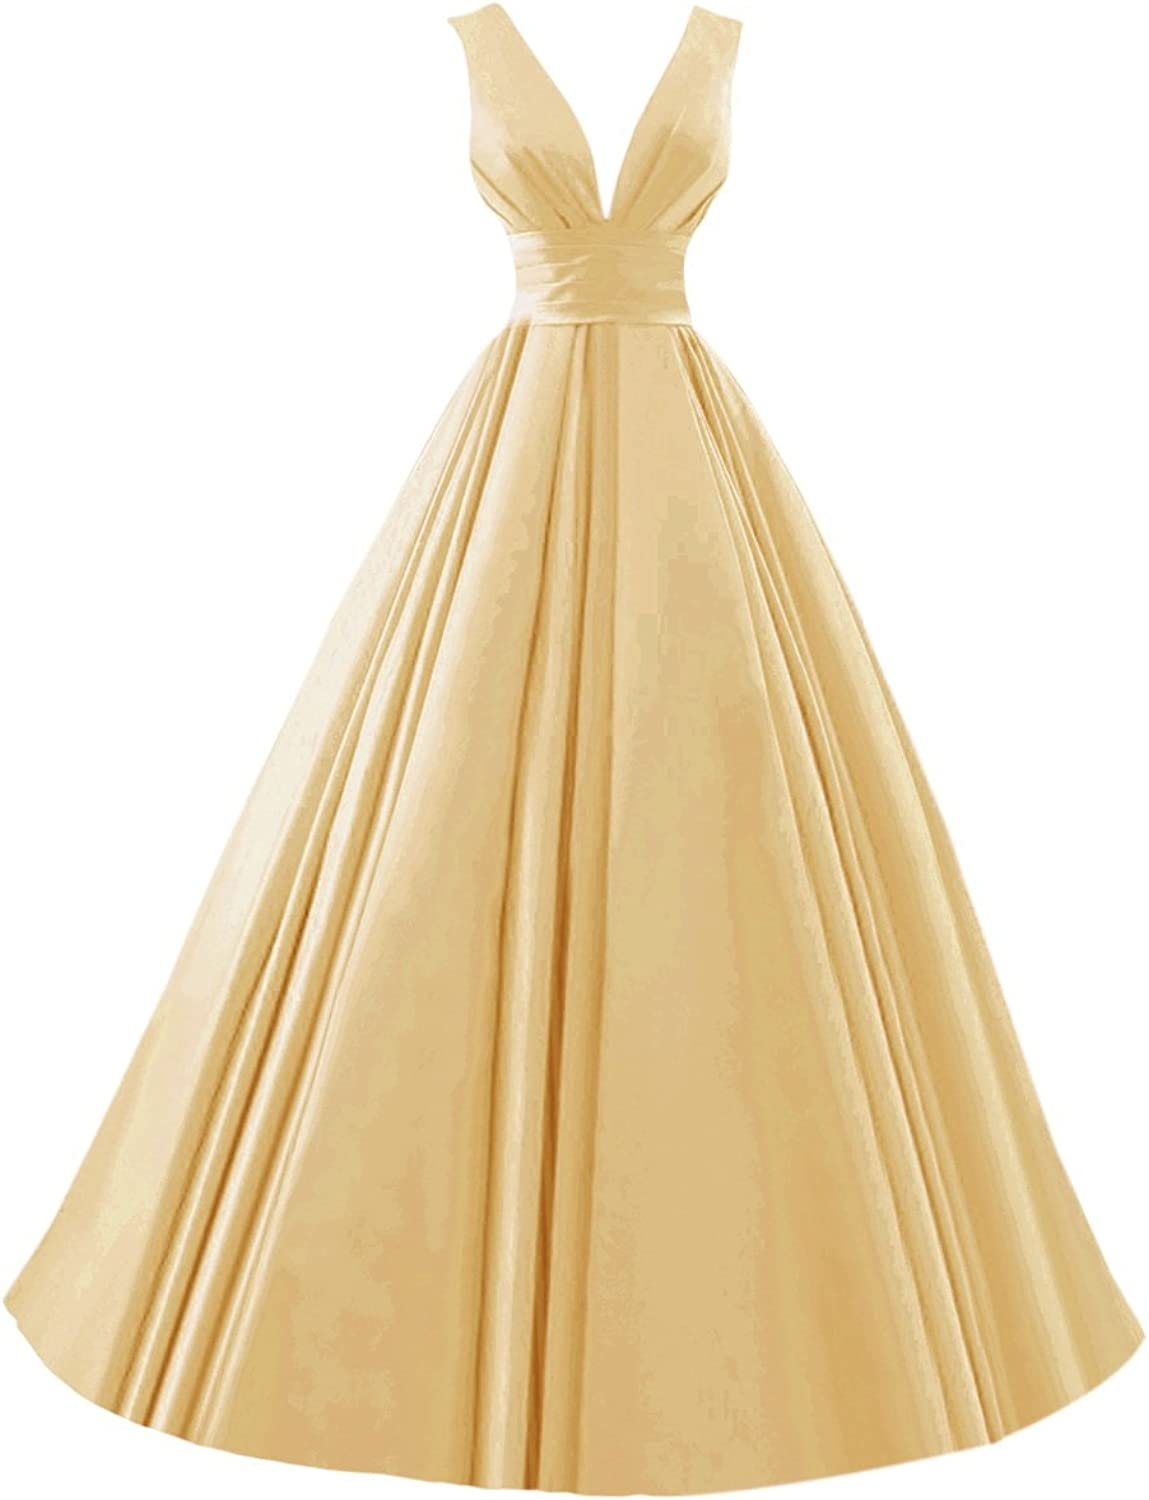 Bess Bridal Women's V Neck Satin Formal Evening Dress Lace Up Prom Gowns